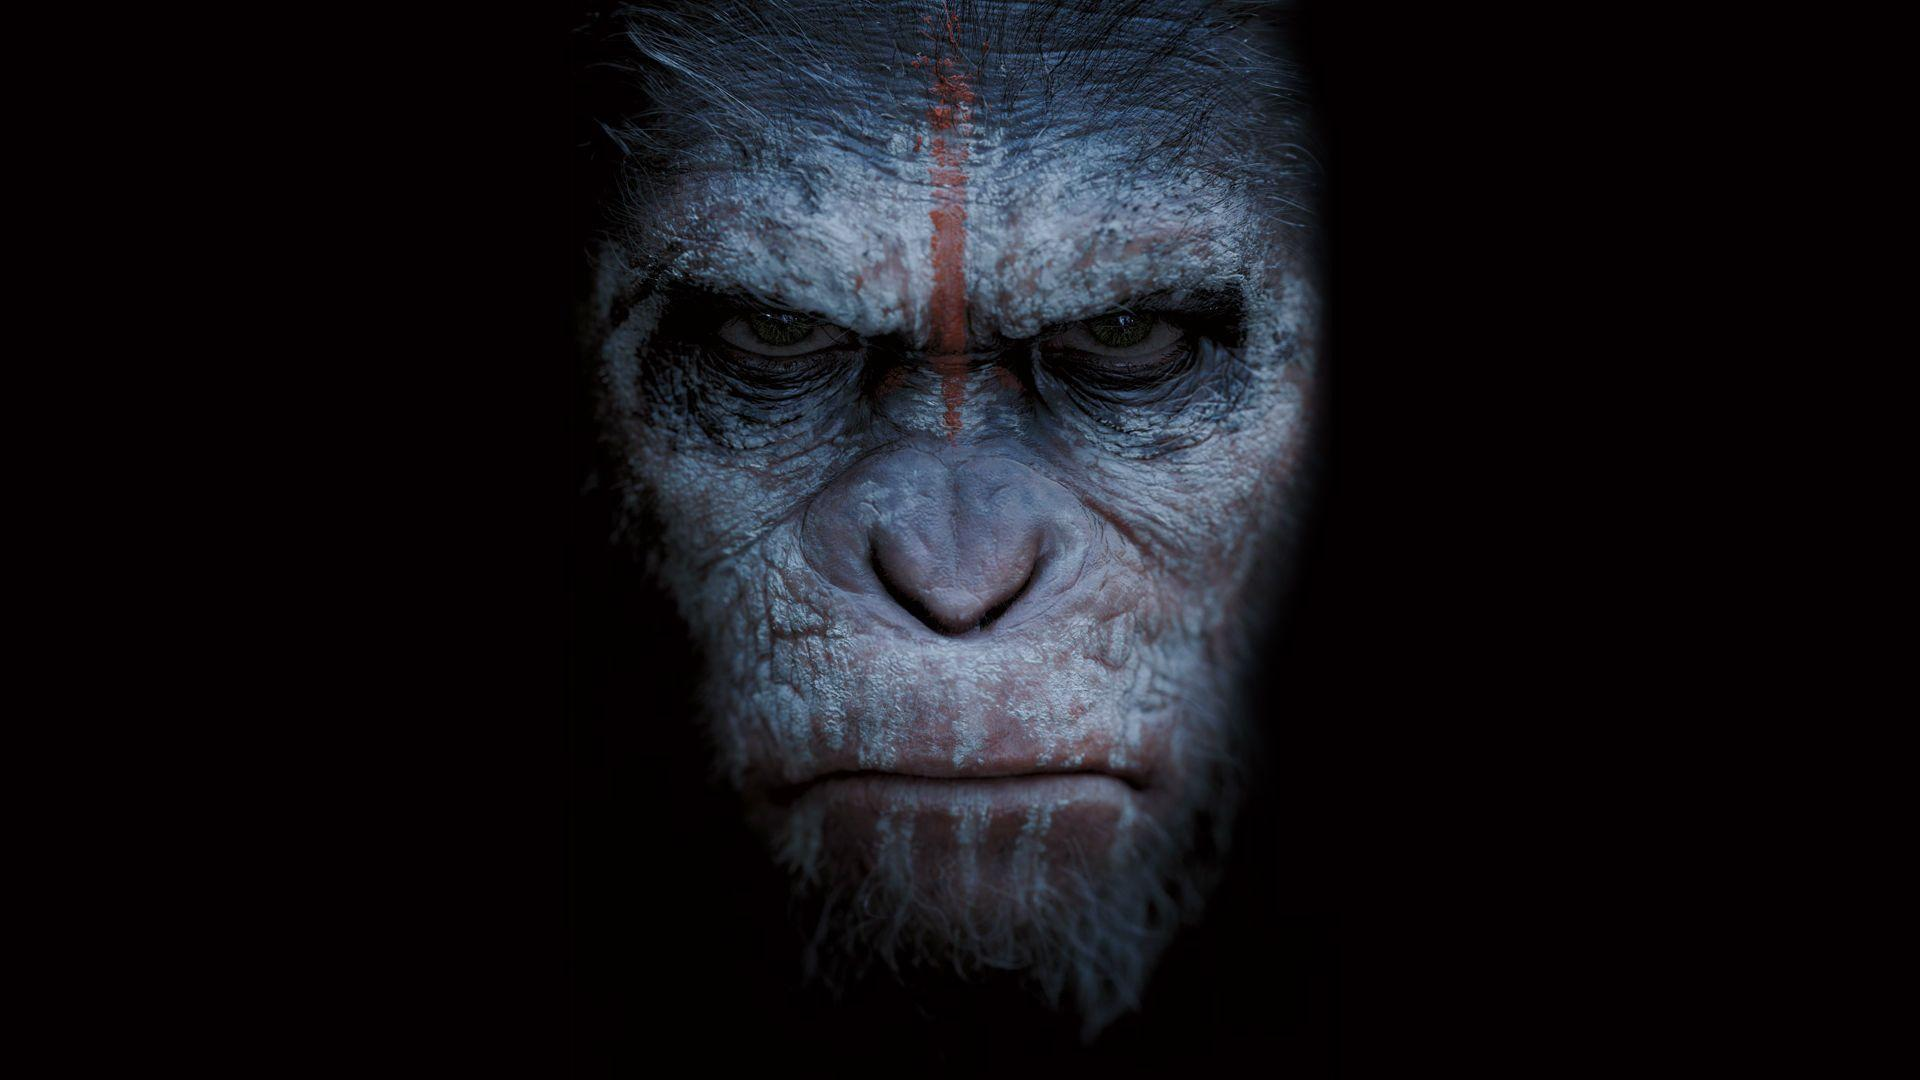 Planet Of The Apes Wallpaper: Caesar Planet Of The Apes Wallpapers